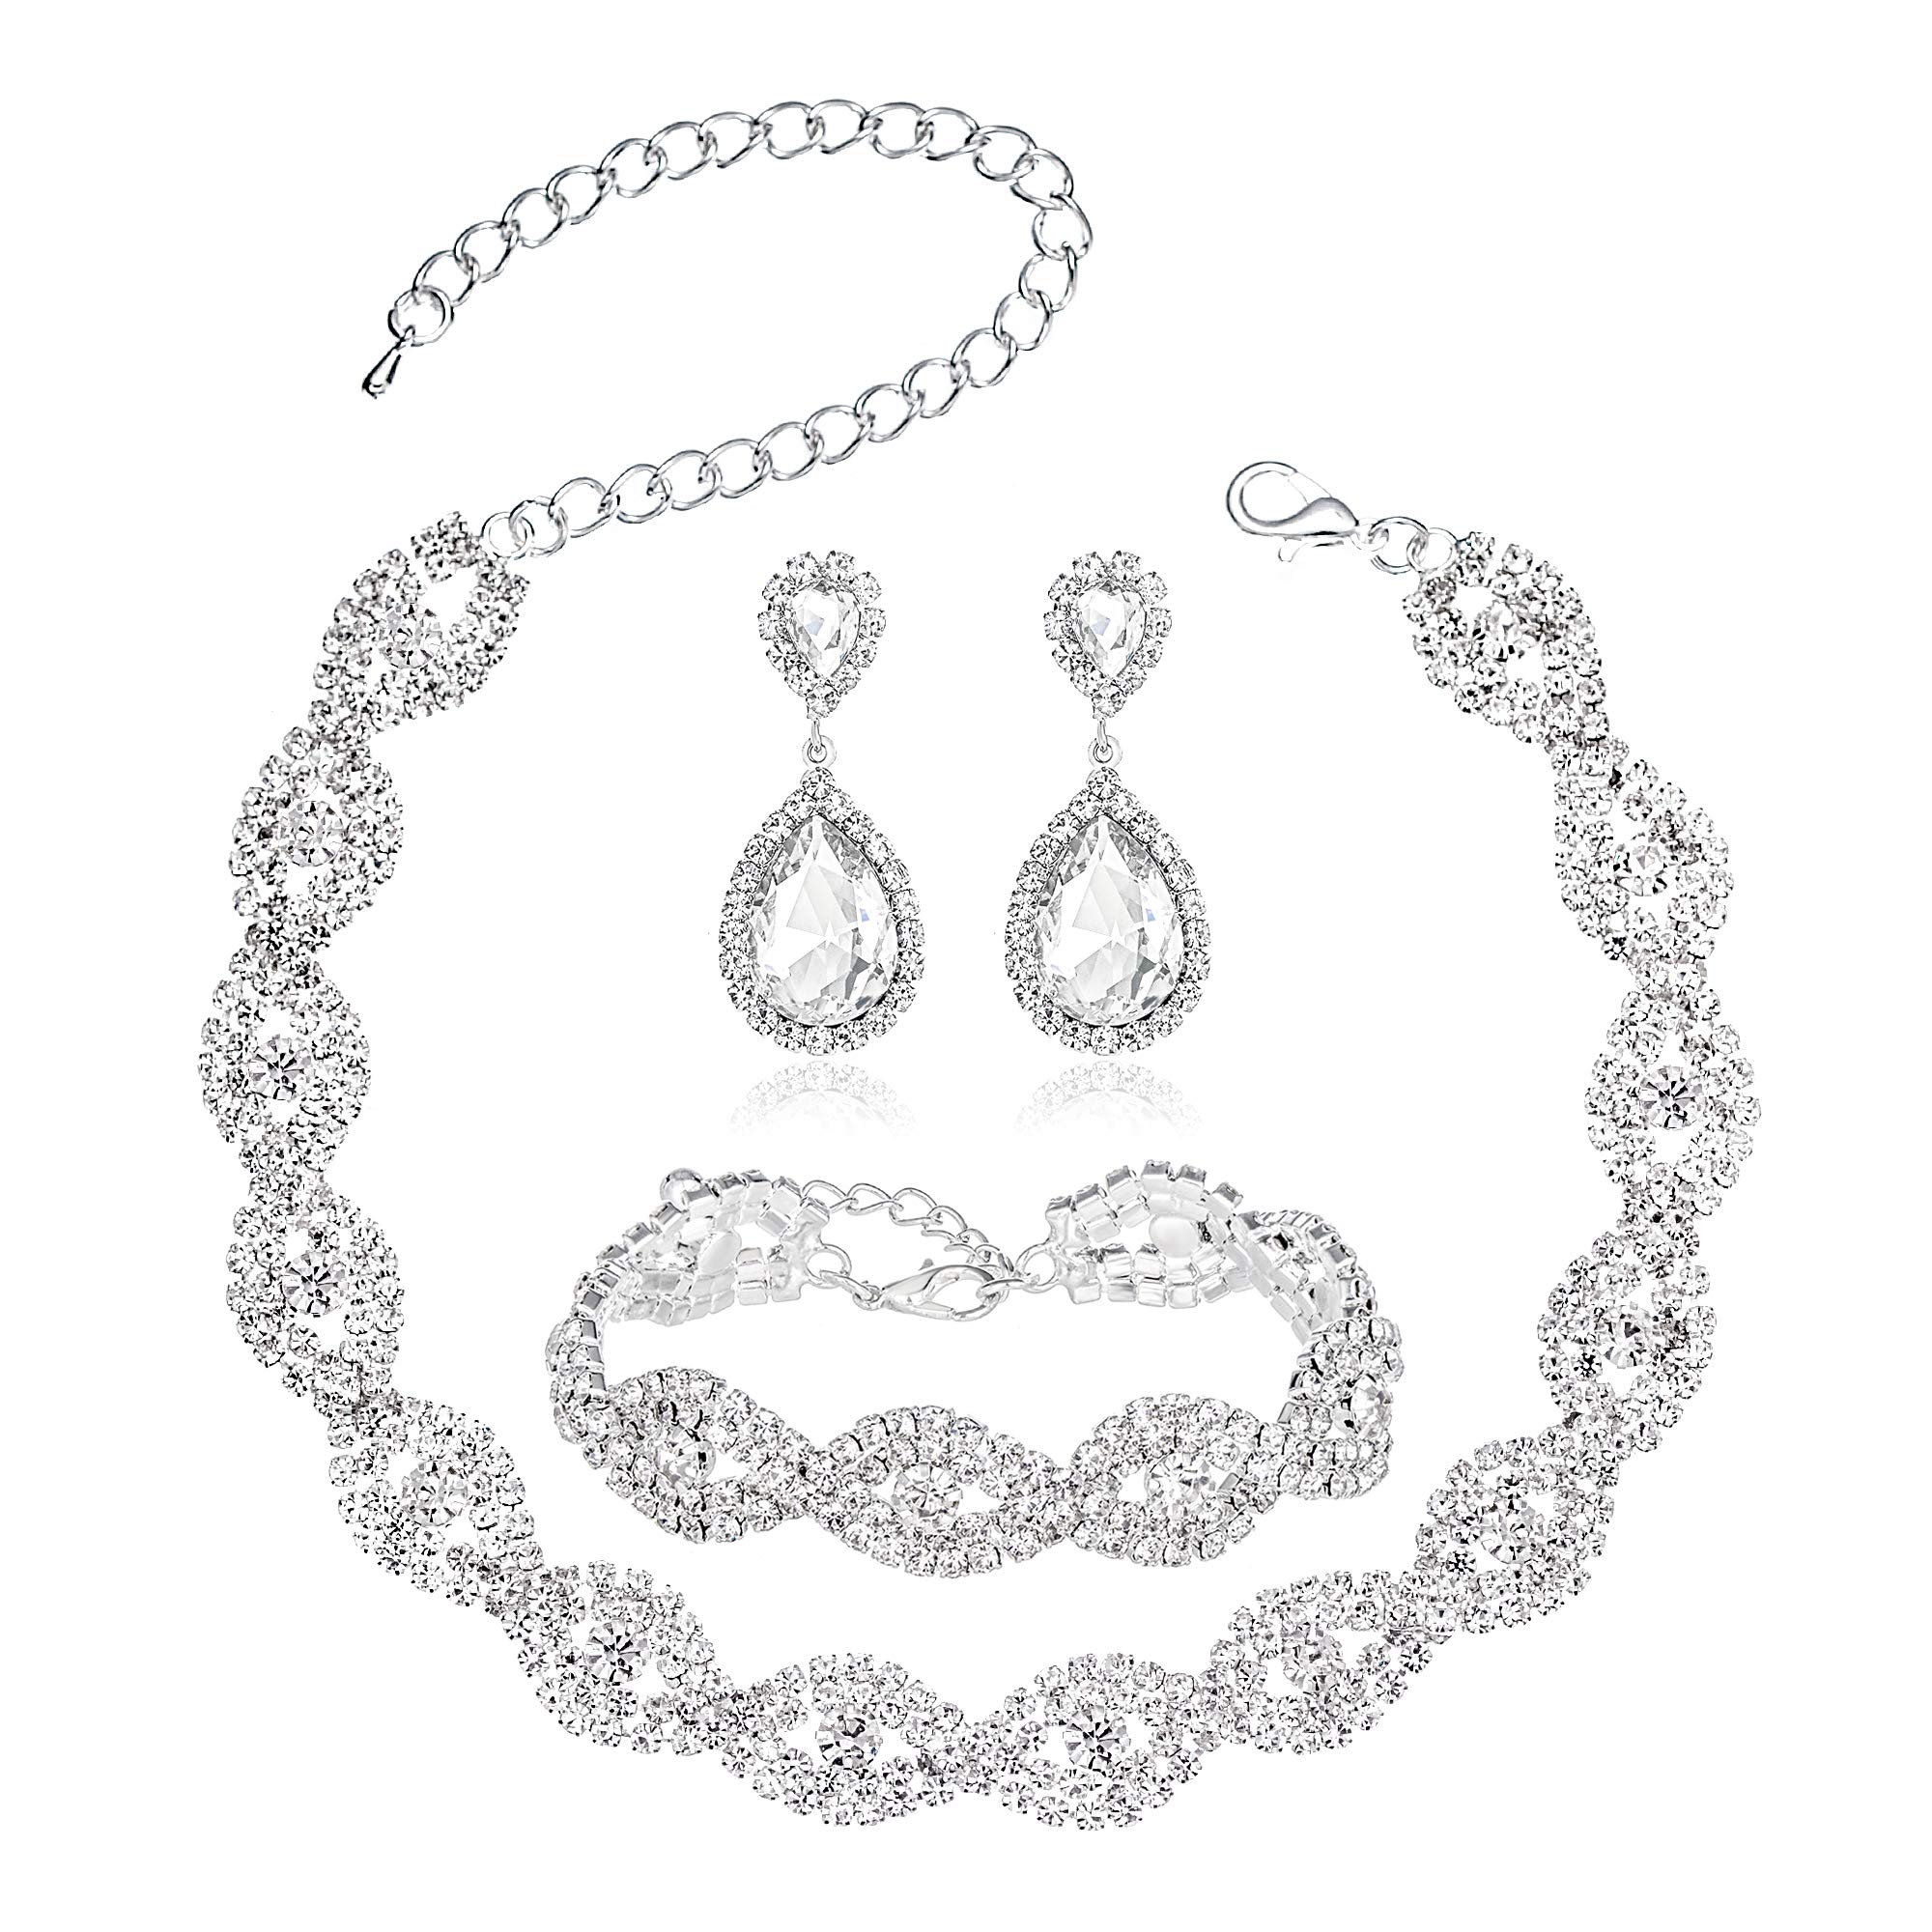 Miraculous Garden Rhinestone Choker Necklace Jewelry Sets for Women - Necklace Bracelet Crystal Teardrop Dangle Earring Sets Party Mother's Day Prom Wedding Fashion Jewelry Gift (2)